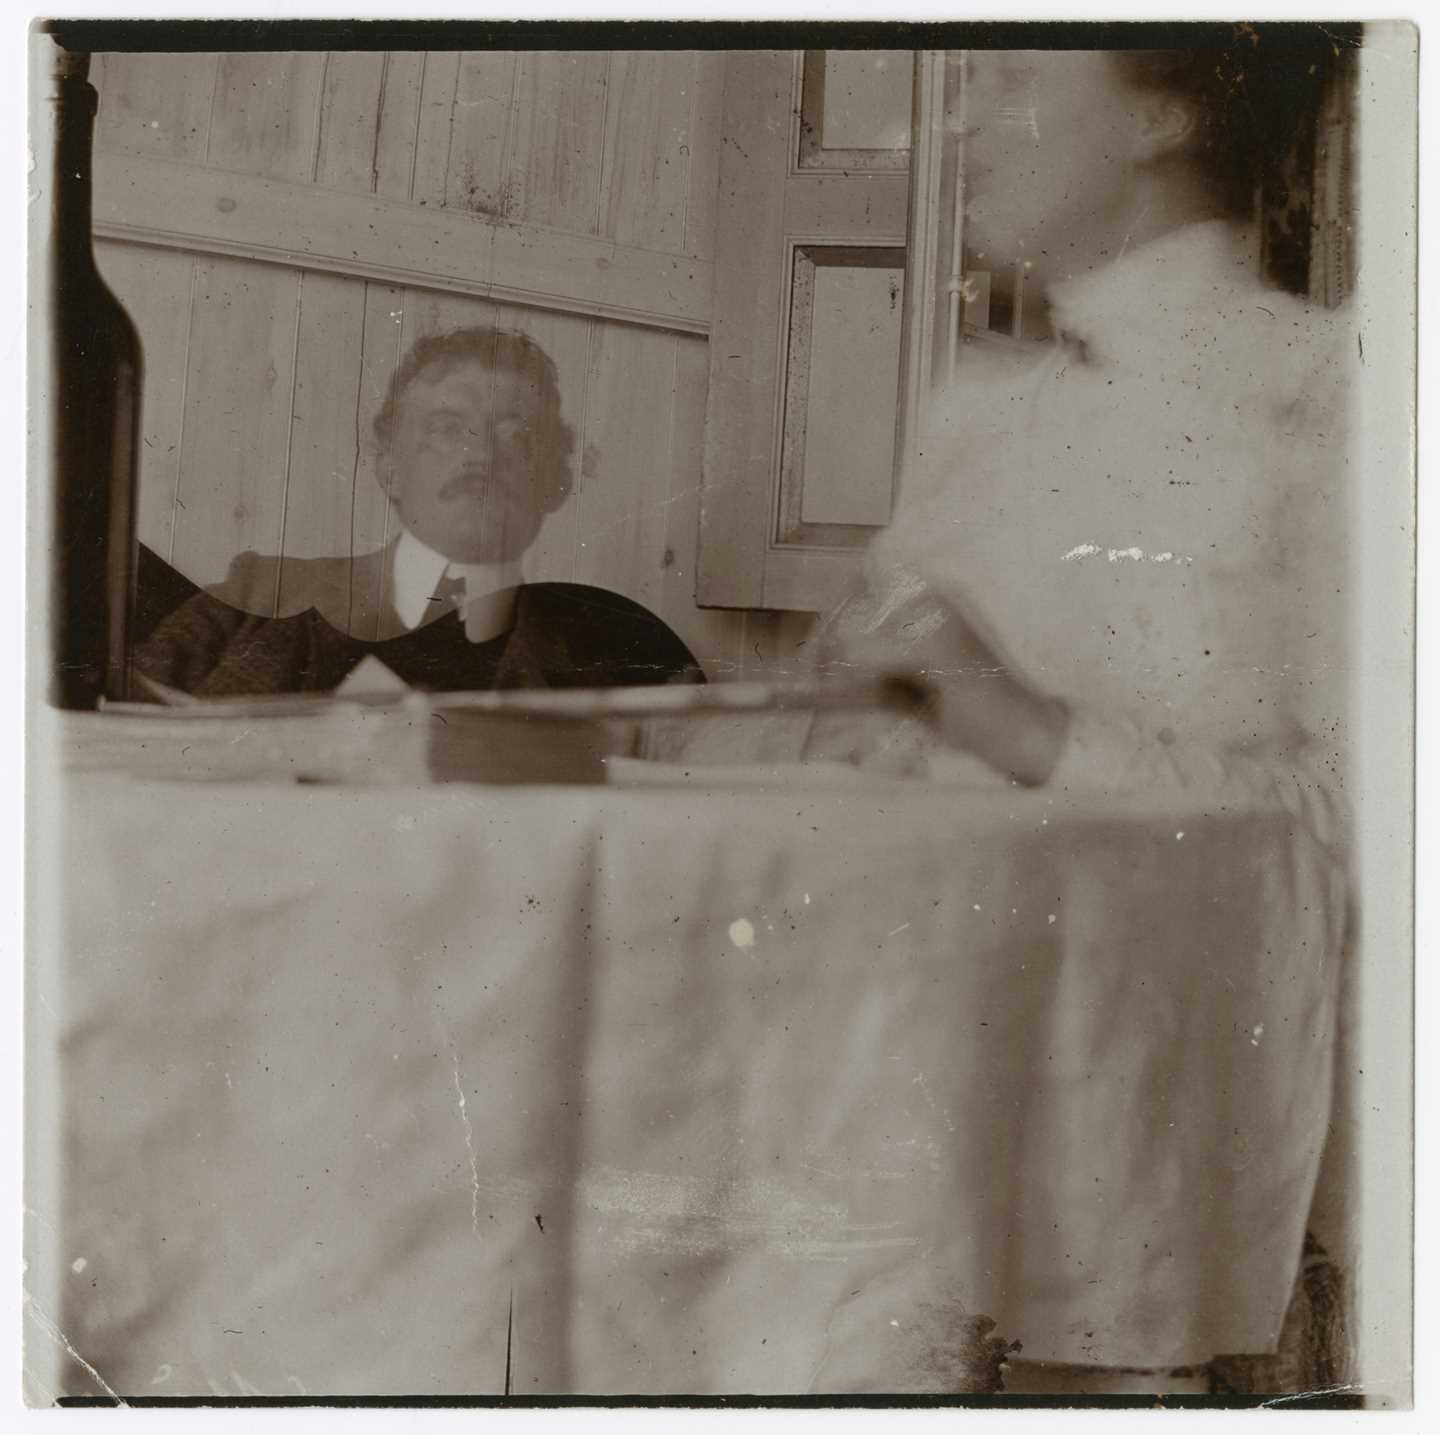 Edvard Munch: Self-Portrait with Housekeeper at 53 Am Strom in Warnemünde. Collodion, 1907. Photo © Munchmuseet